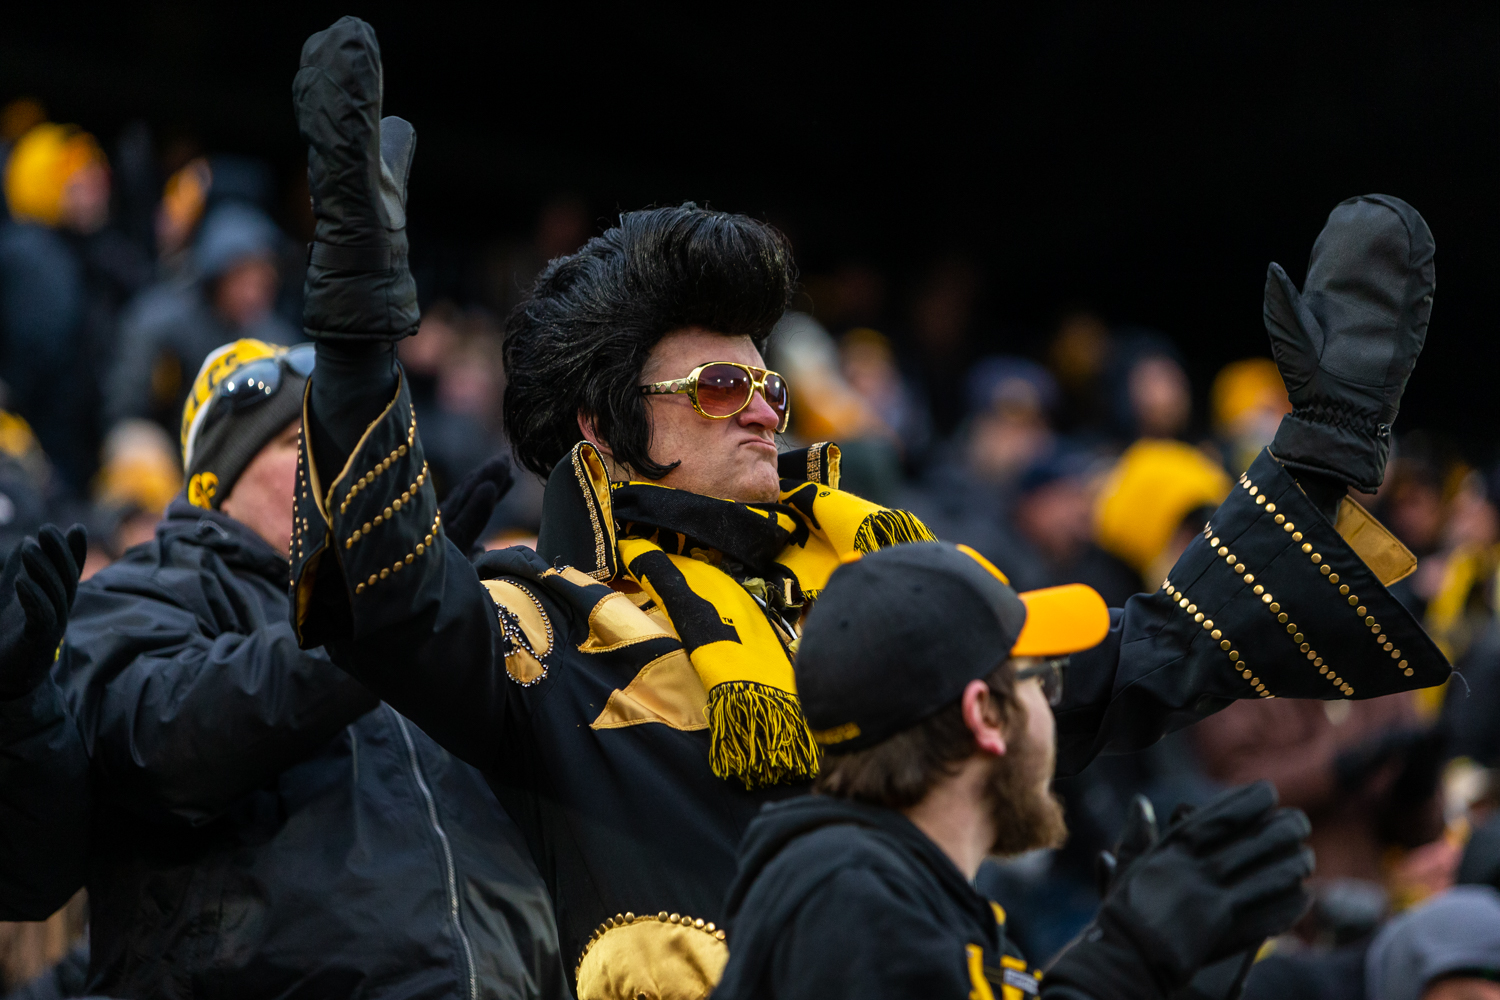 A+fan+dressed+as+Elvis+cheers+from+the+stands+during+a+game+against+Northwestern+University+on+Saturday%2C+Nov.+10%2C+2018+at+Kinnick+Stadium+in+Iowa+City.+The+Wildcats+defeated+the+Hawkeyes+14-10.+%28David+Harmantas%2FThe+Daily+Iowan%29